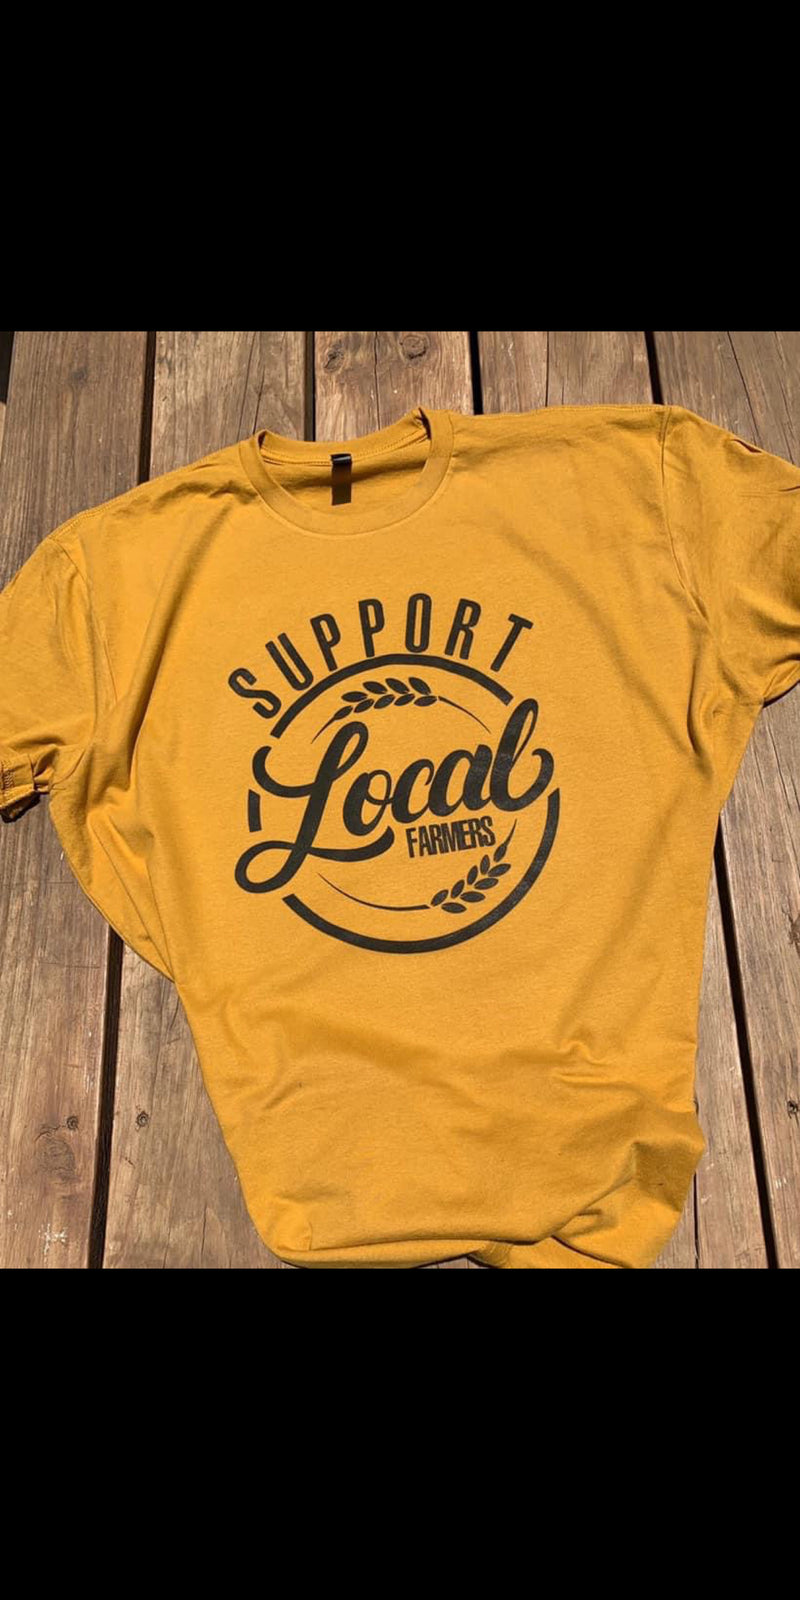 Support Local Farmers Top - Also in Plus Size